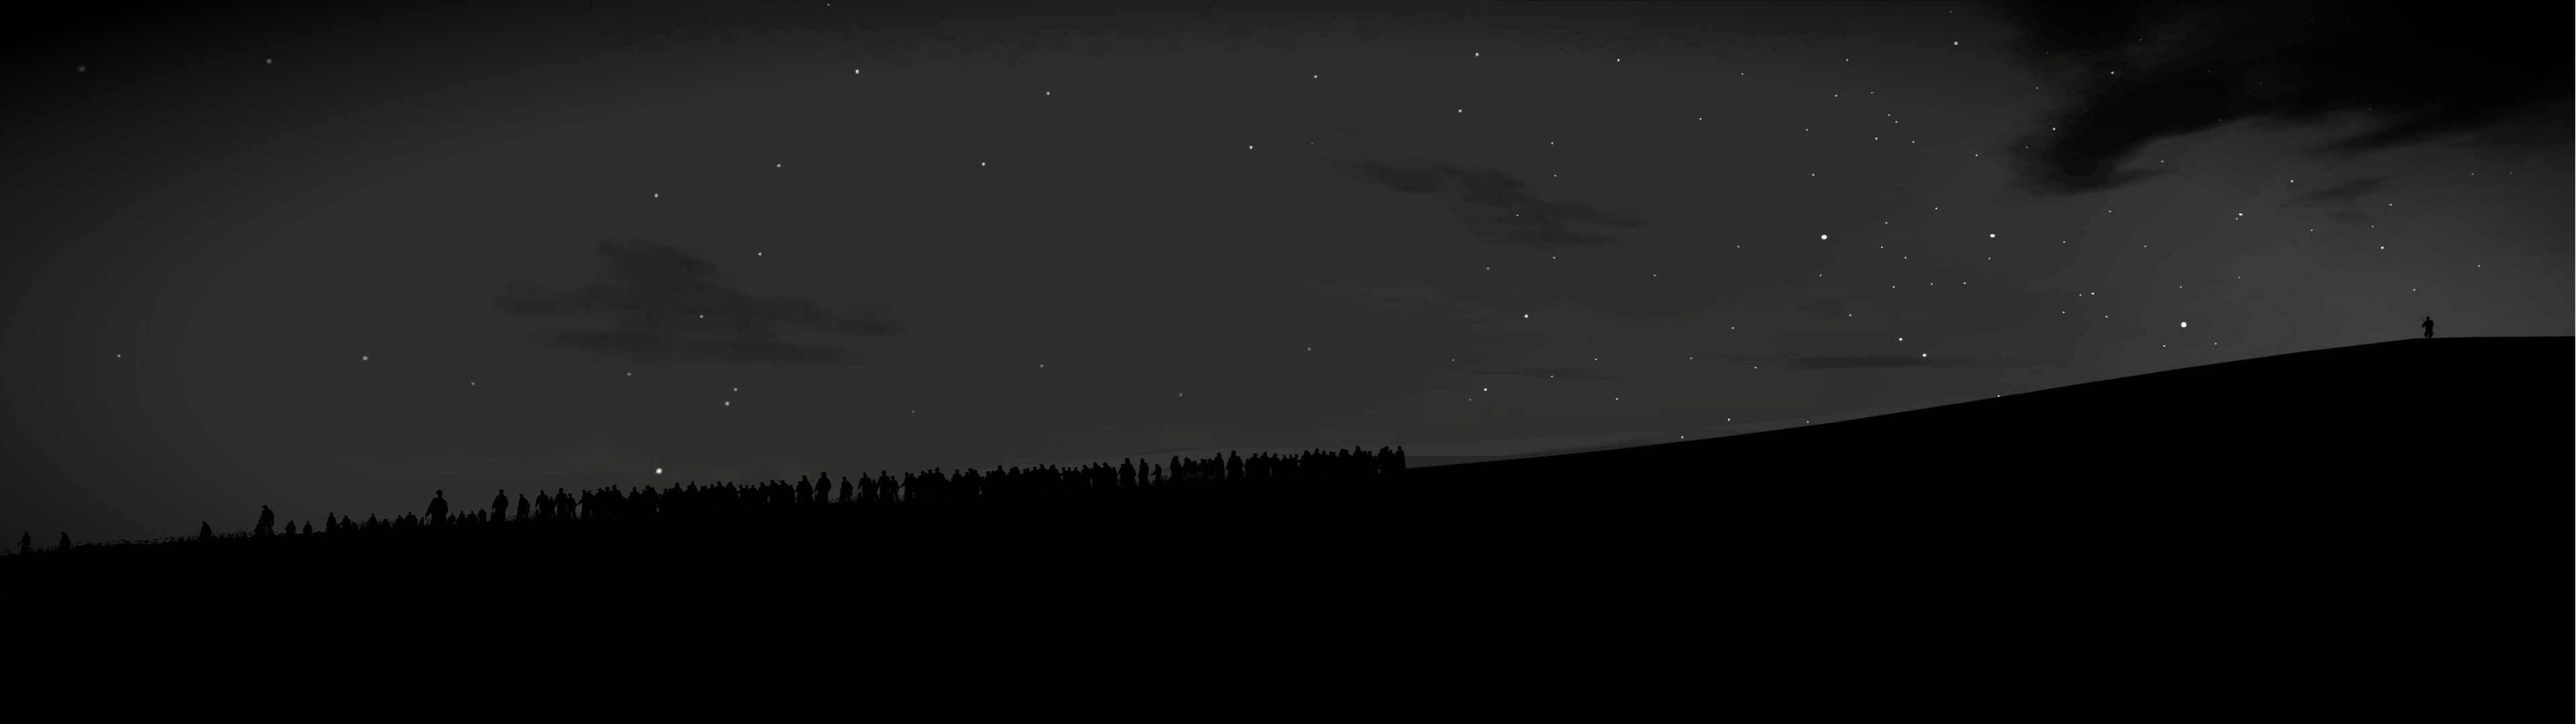 3840x1080 What do you think of the DayZ dual monitor wallpaper I put together today?